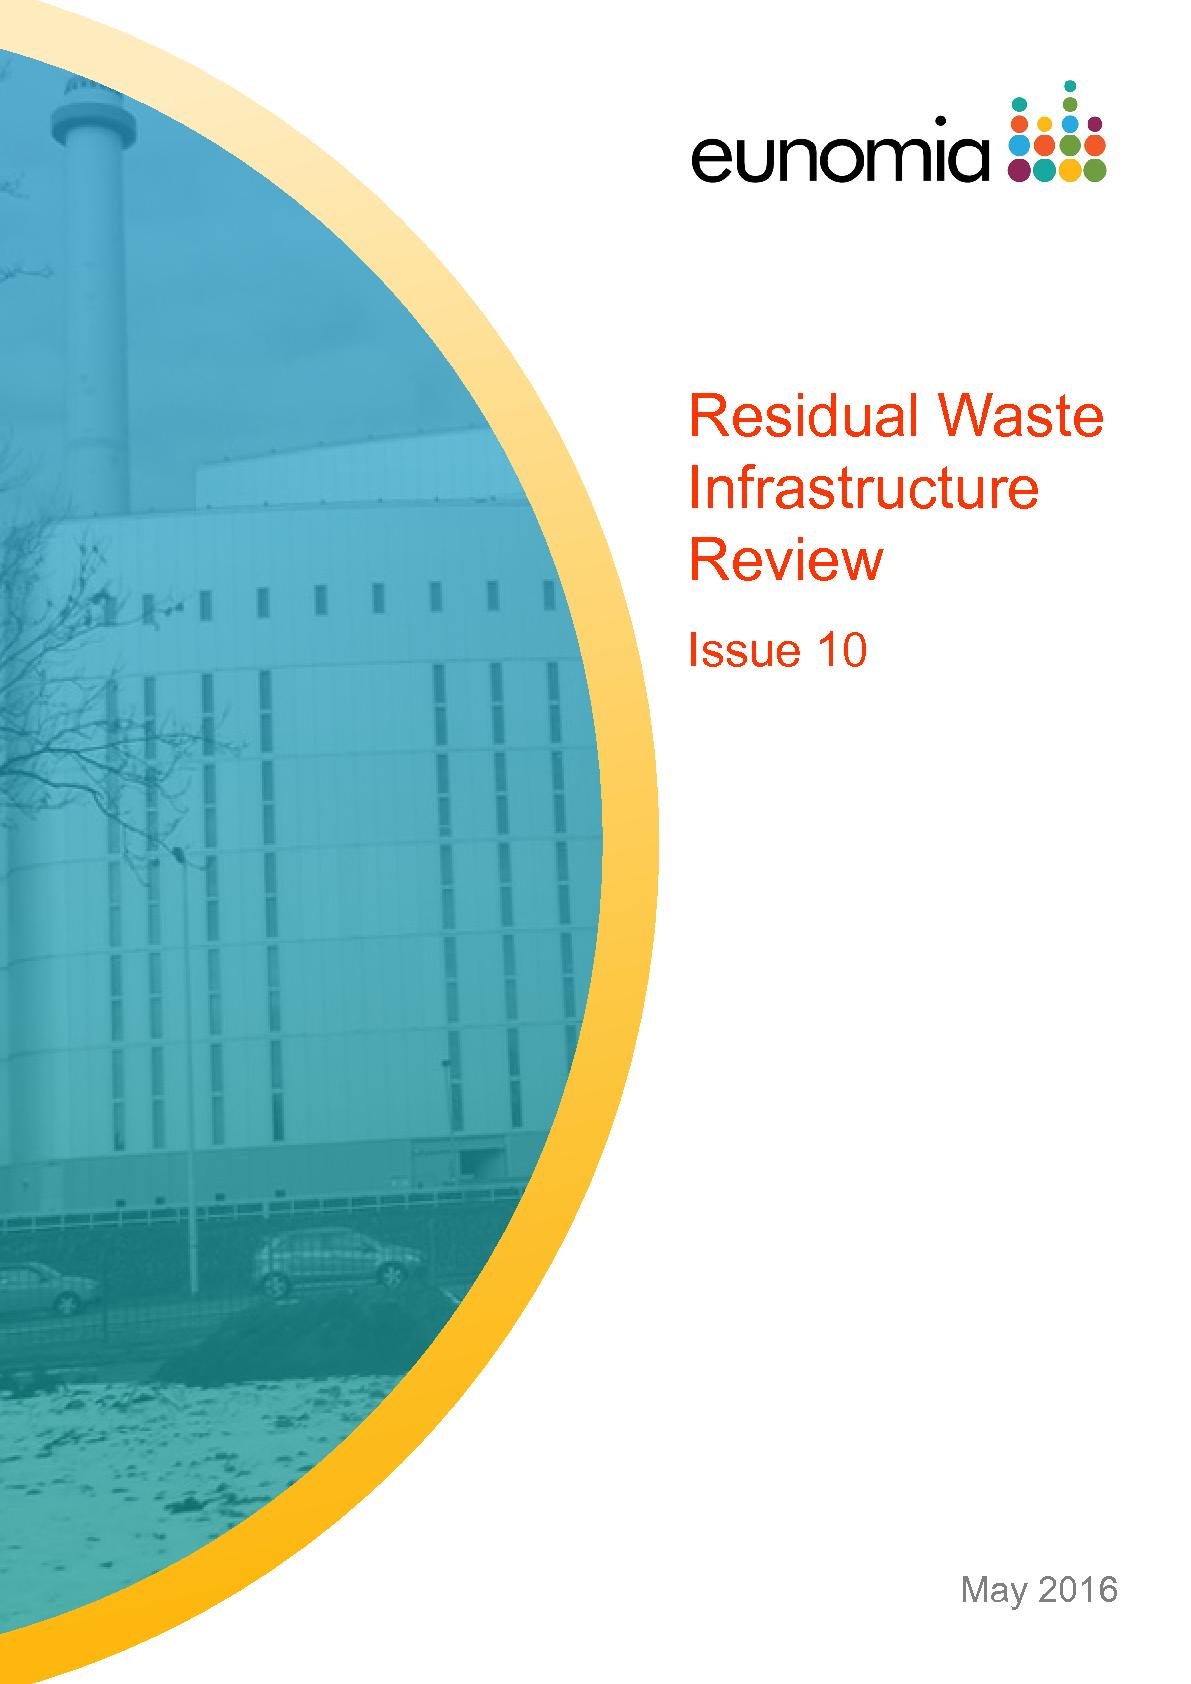 hight resolution of in addition to updating the picture for the uk eunomia s tenth issue of its residual waste infrastructure review examines the balance between residual